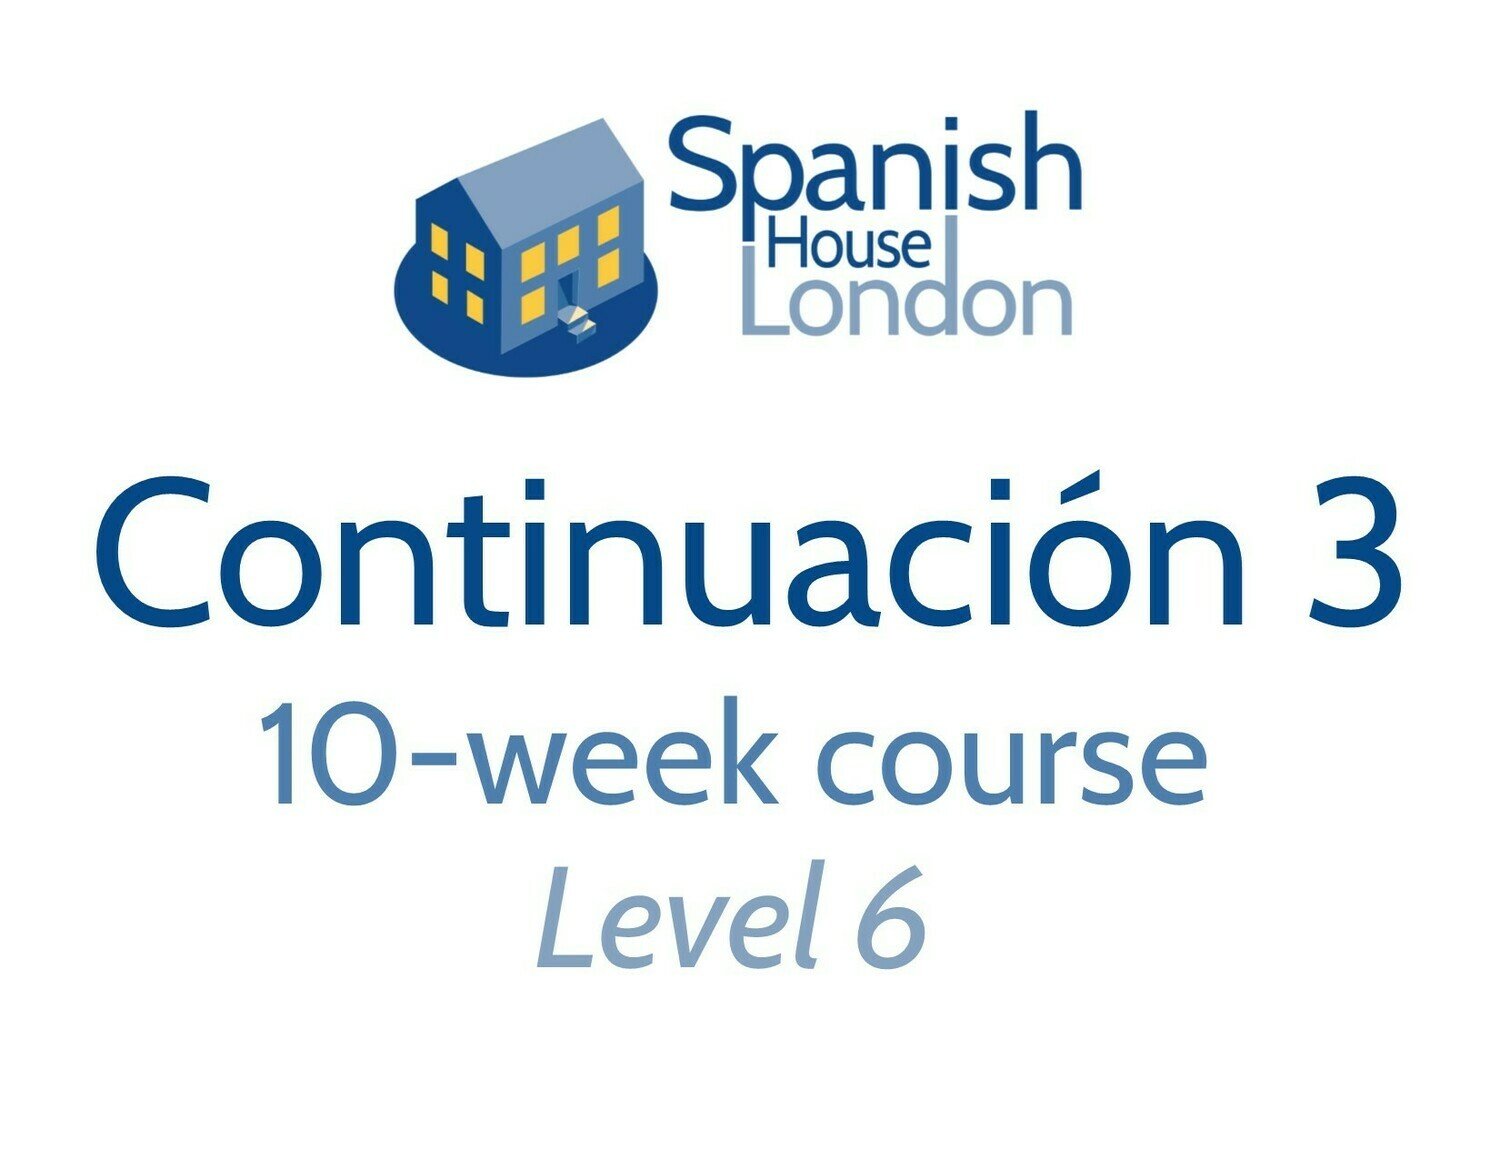 Continuacion 3 Course starting on 30th September at 6pm in Euston